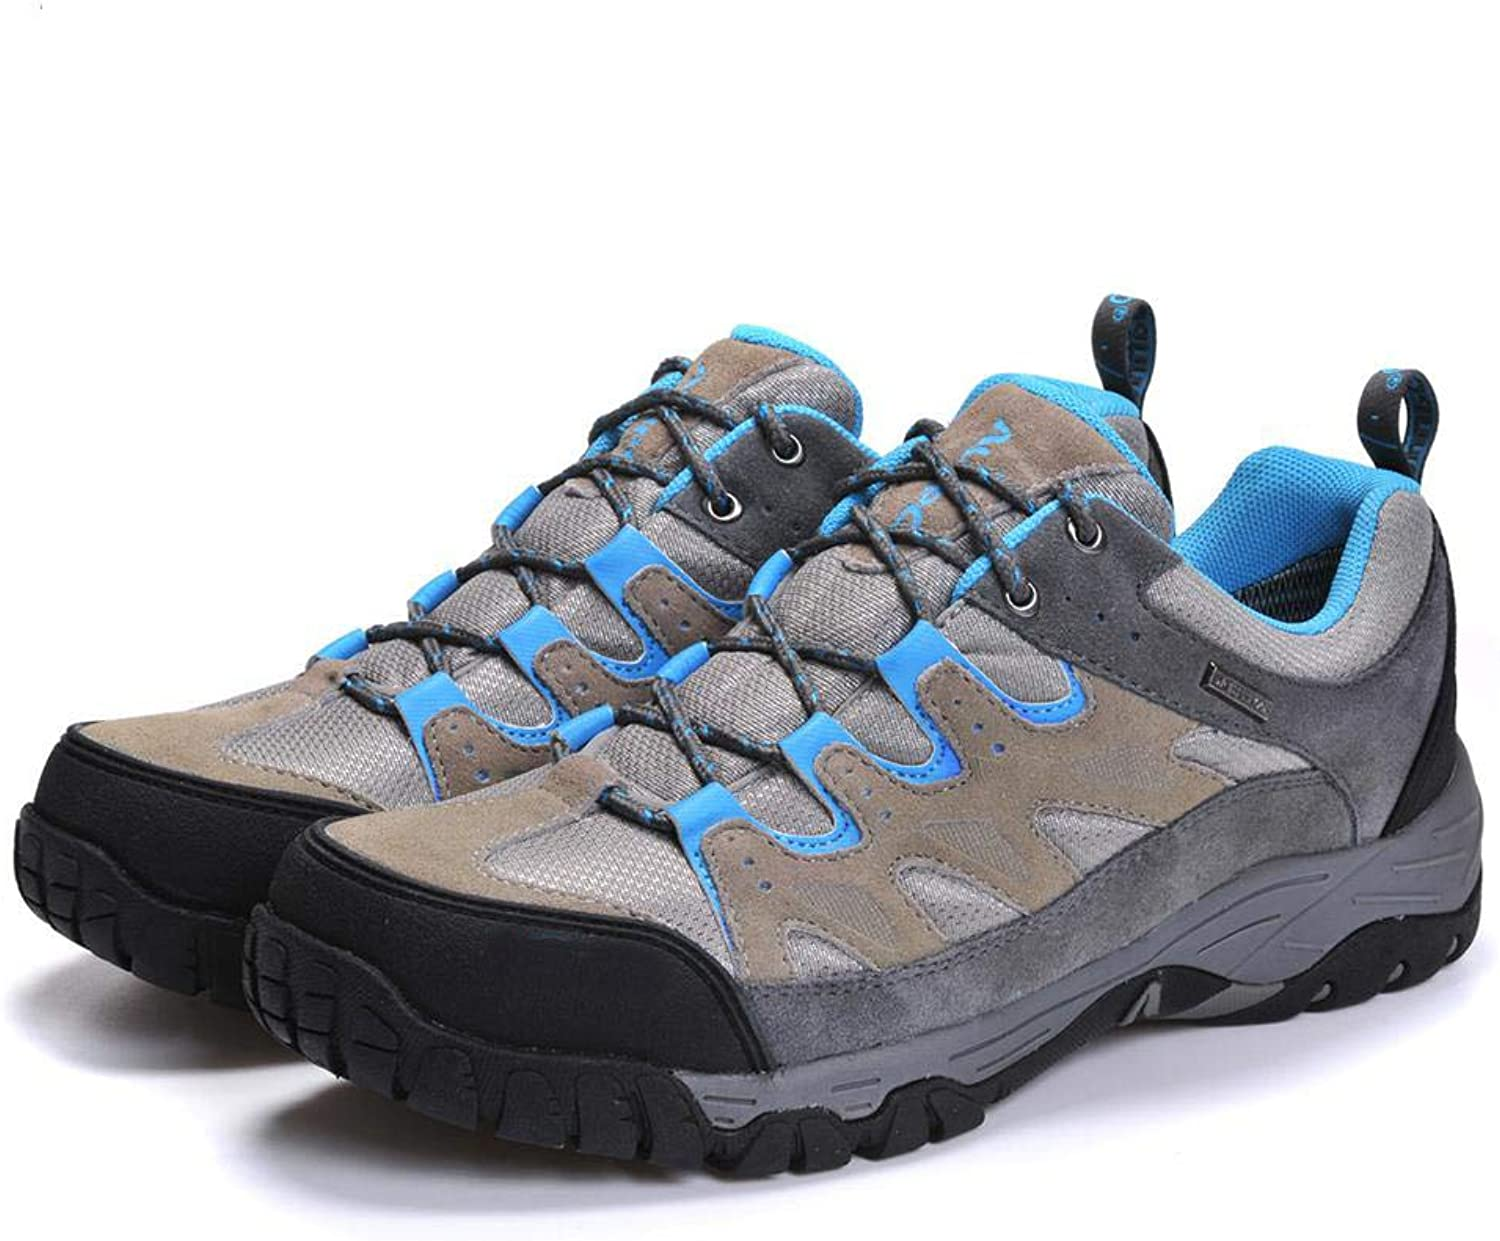 QIKAI Hiking shoes Men's Waterproof Outdoor shoes Low to Help Walking shoes Off-Road shoes wear-Resistant Slip,for Hiking Running Trail Climbing Outdoor